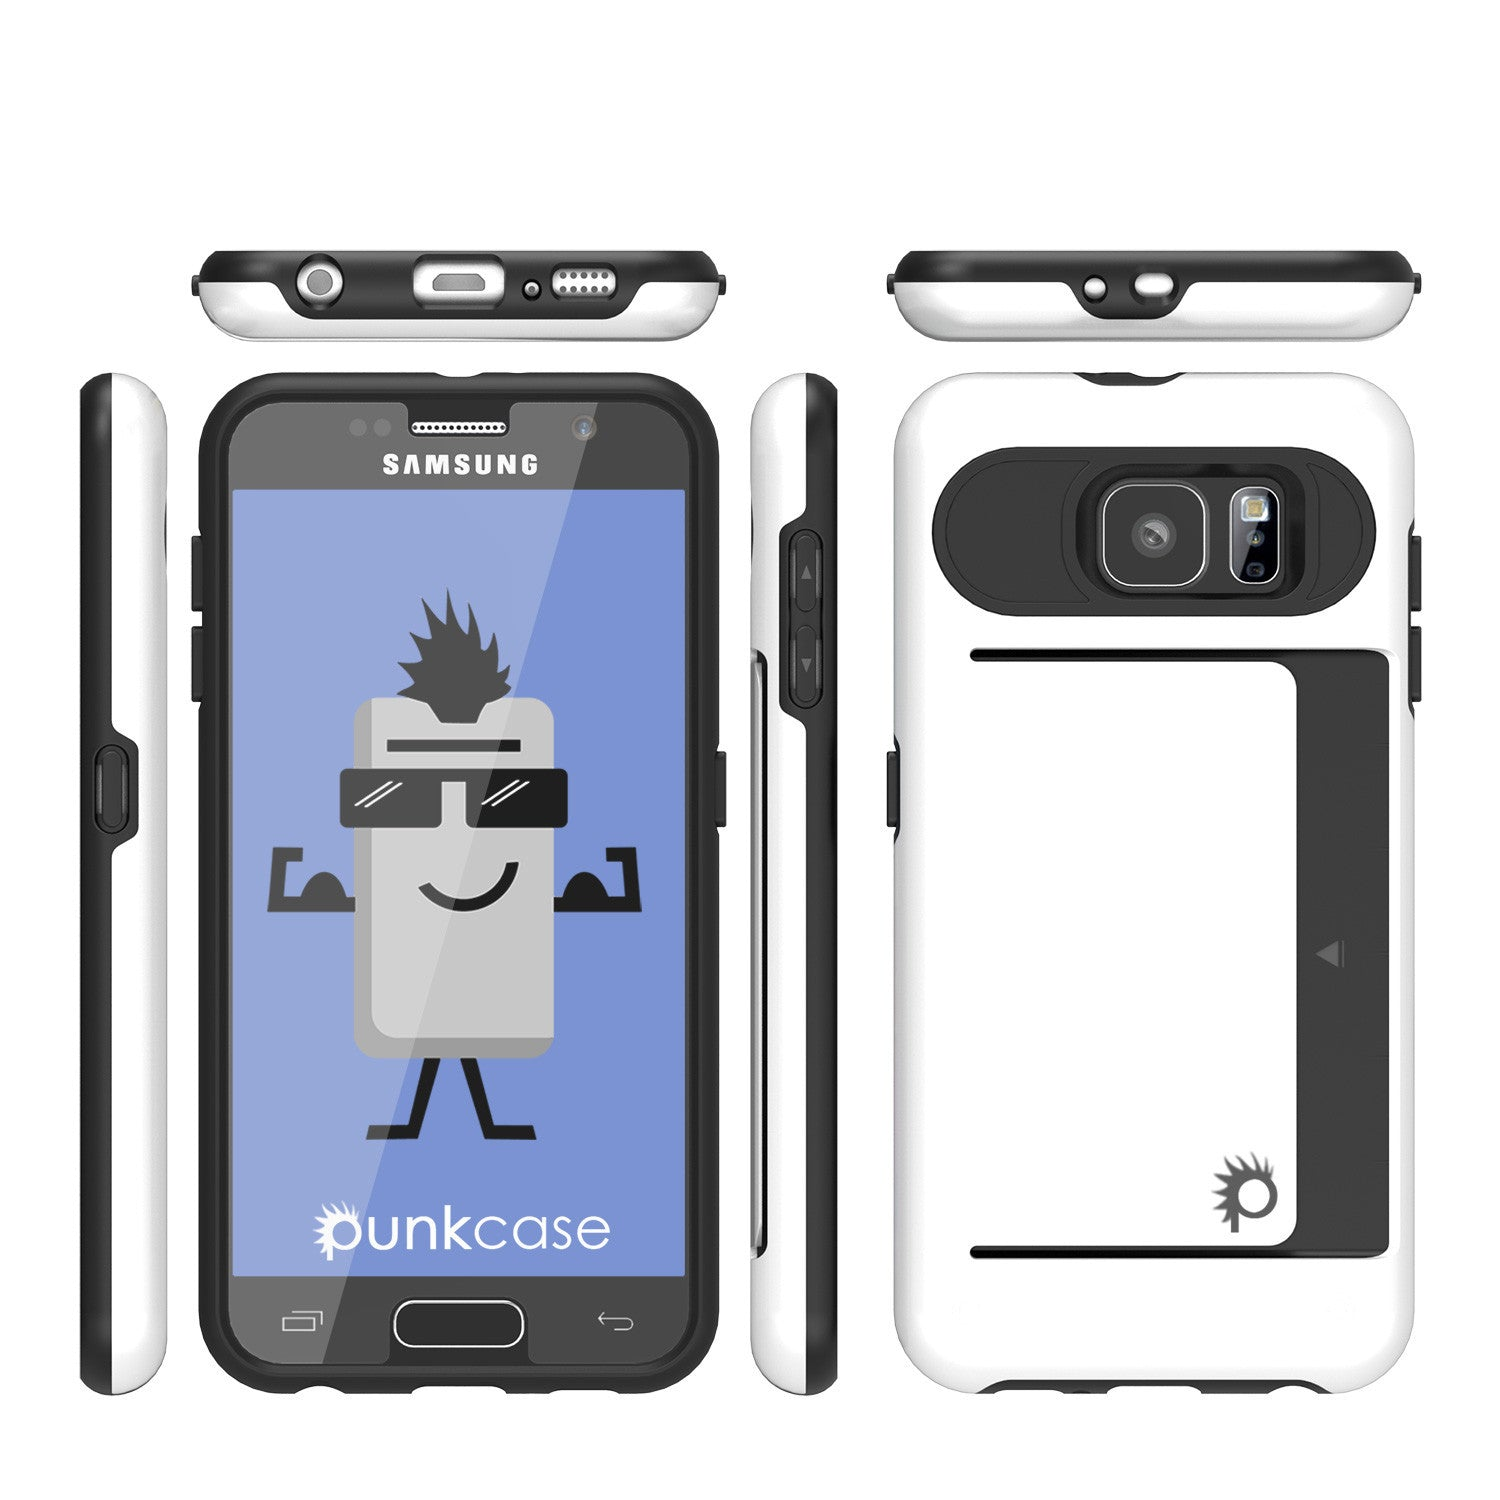 Galaxy S6 EDGE Plus Case PunkCase CLUTCH White Series Slim Armor Soft Cover Case w/ Screen Protector